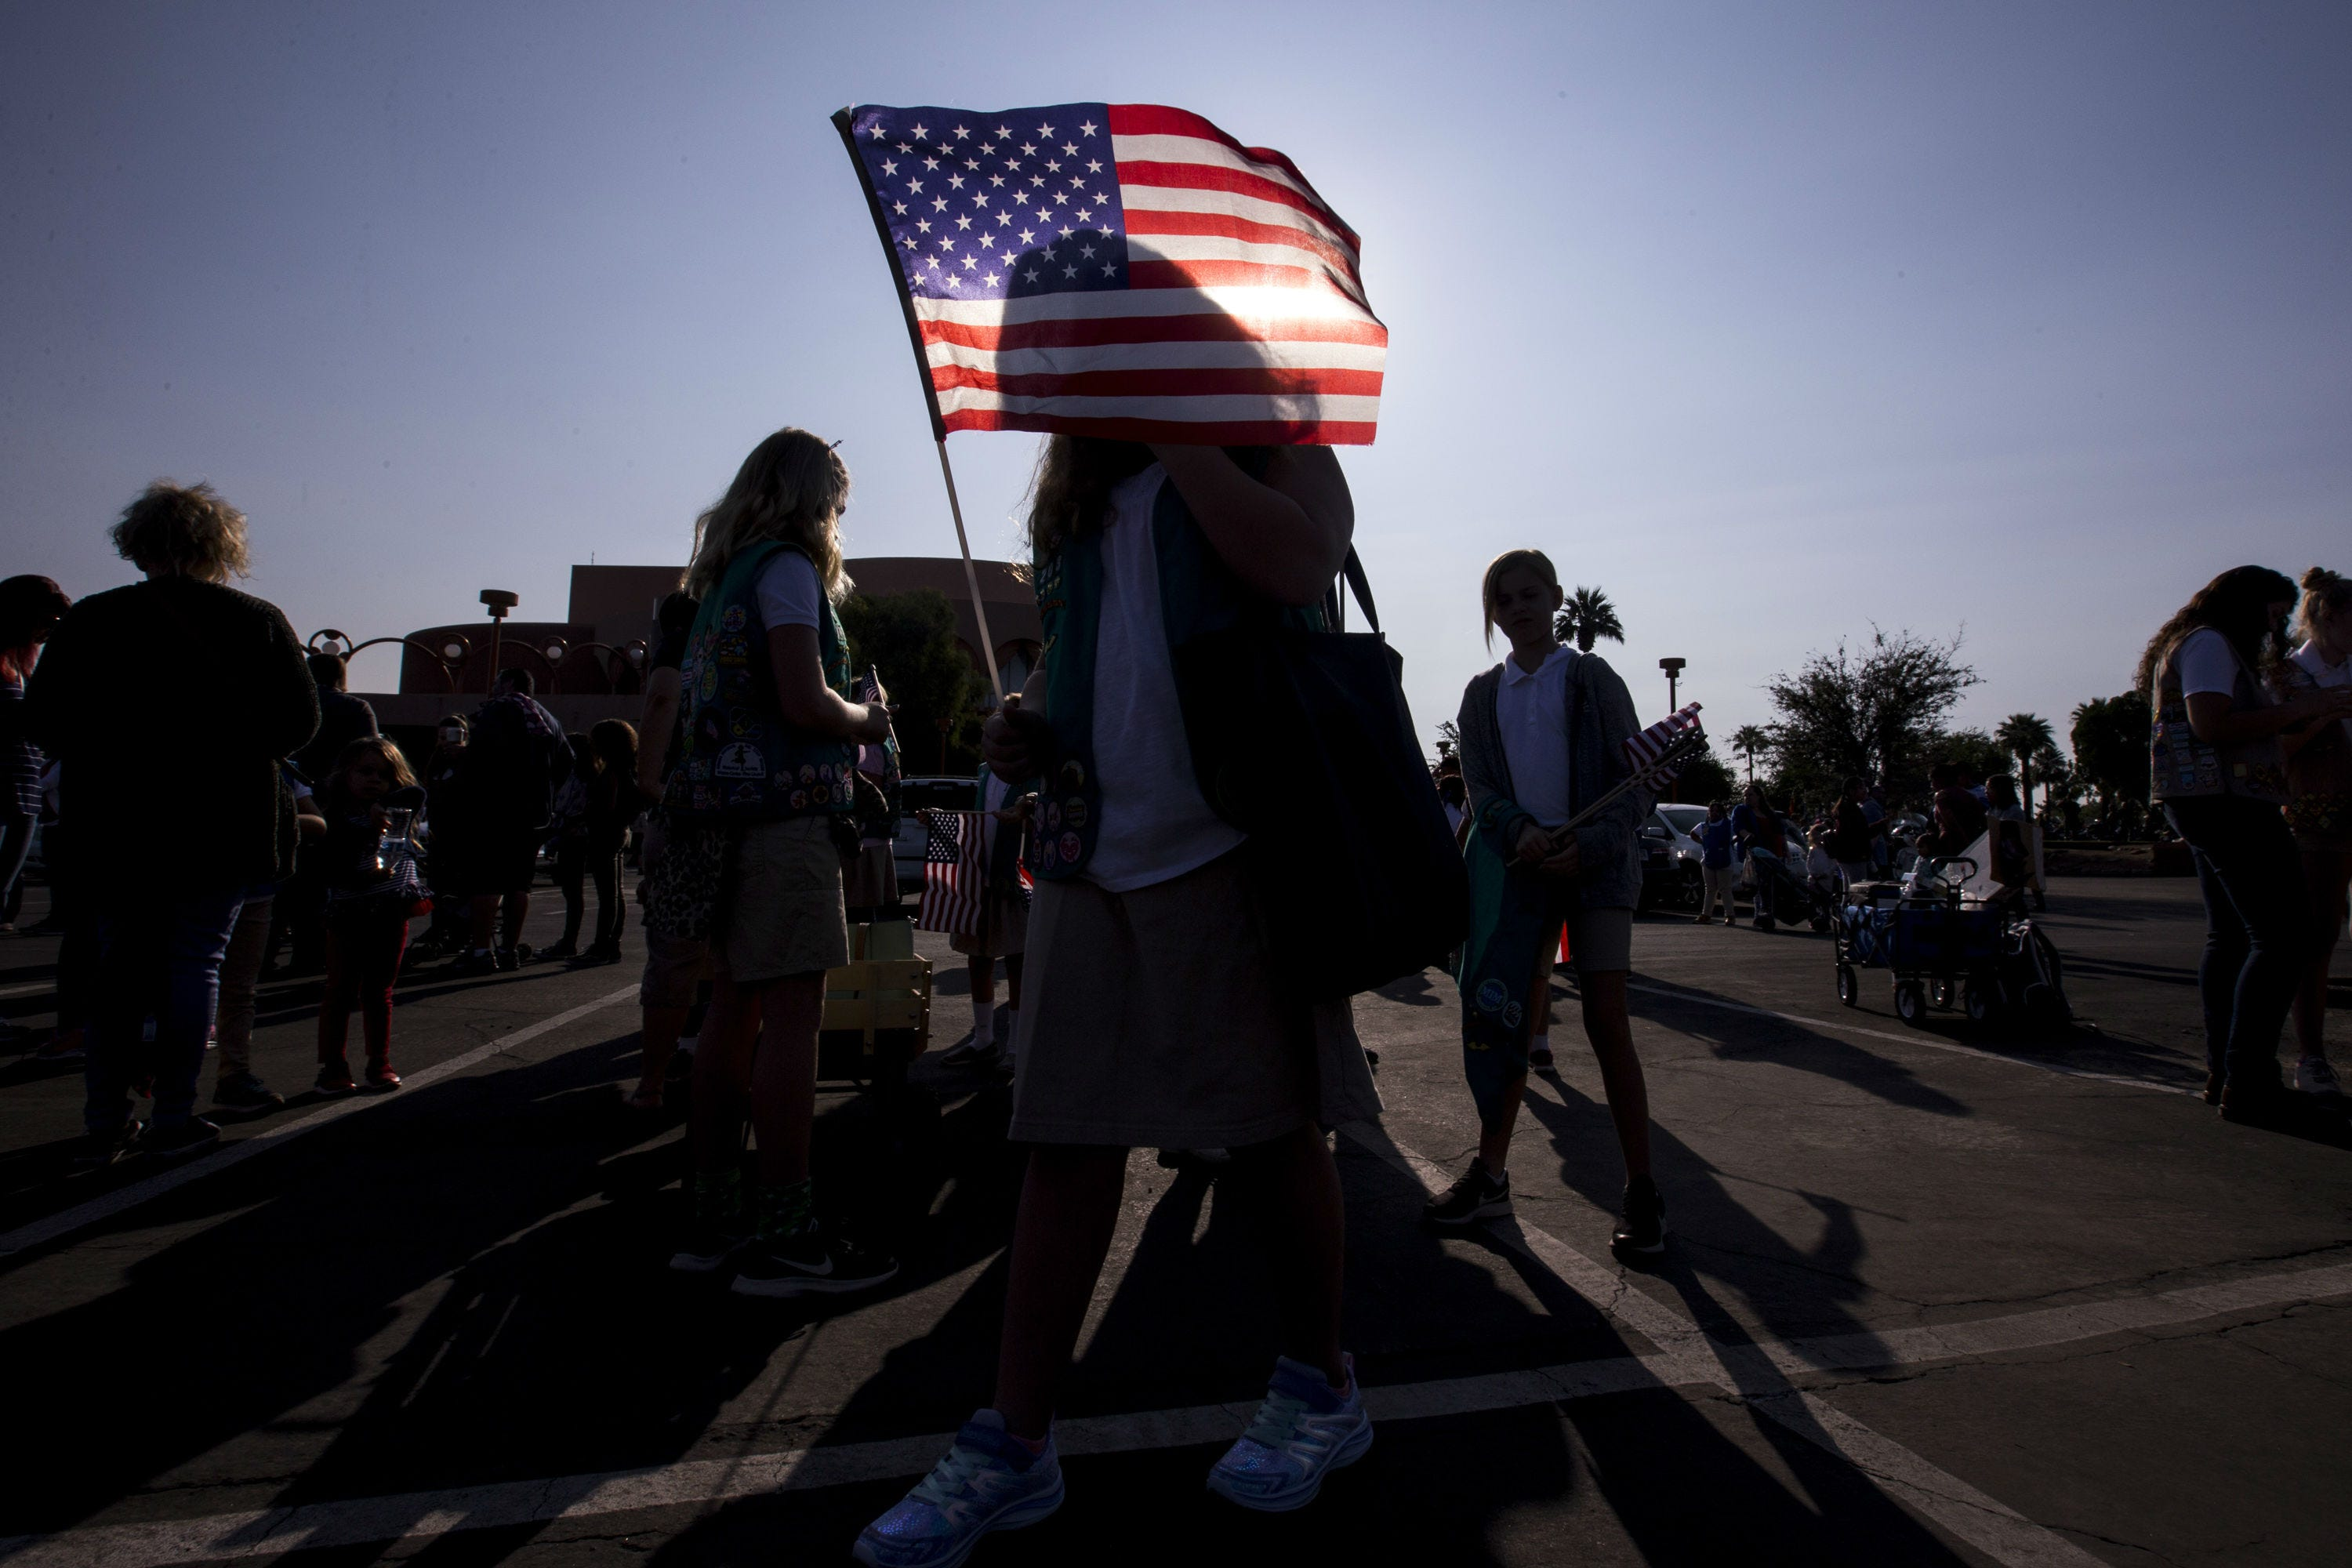 Phoenix residents honor veterans on 100th anniversary of the end of World War I | AZ Central